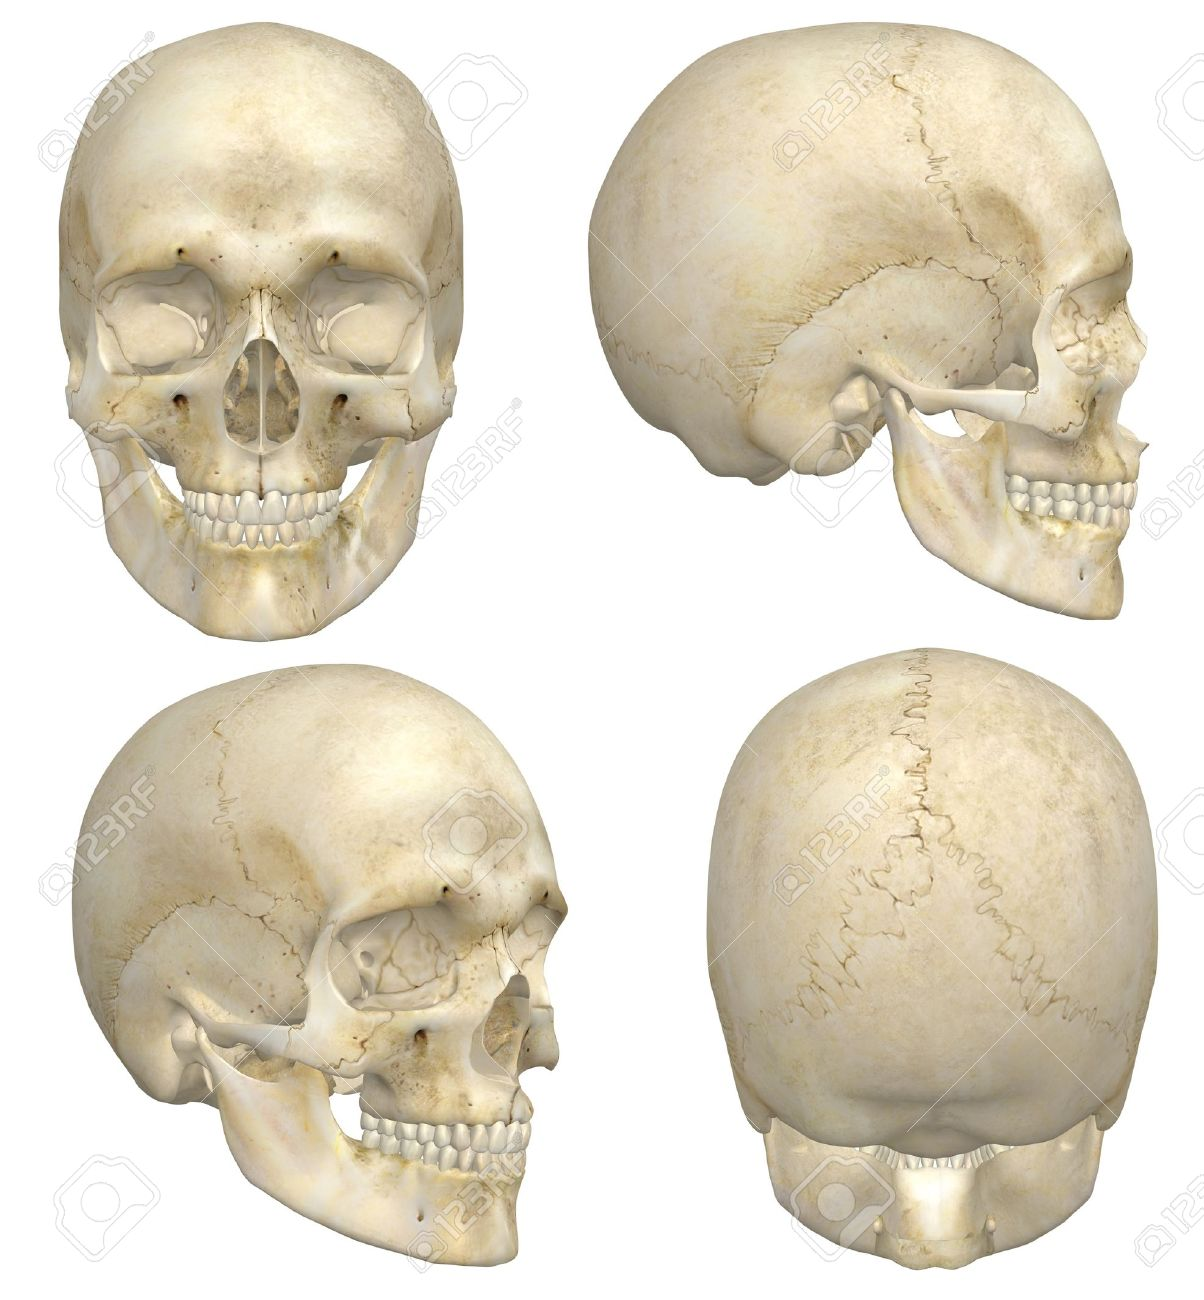 A illustration containing four views, front, side, rear, and angled front, of a human skull Isolated on a solid white background Very educational and detailed - 15323309